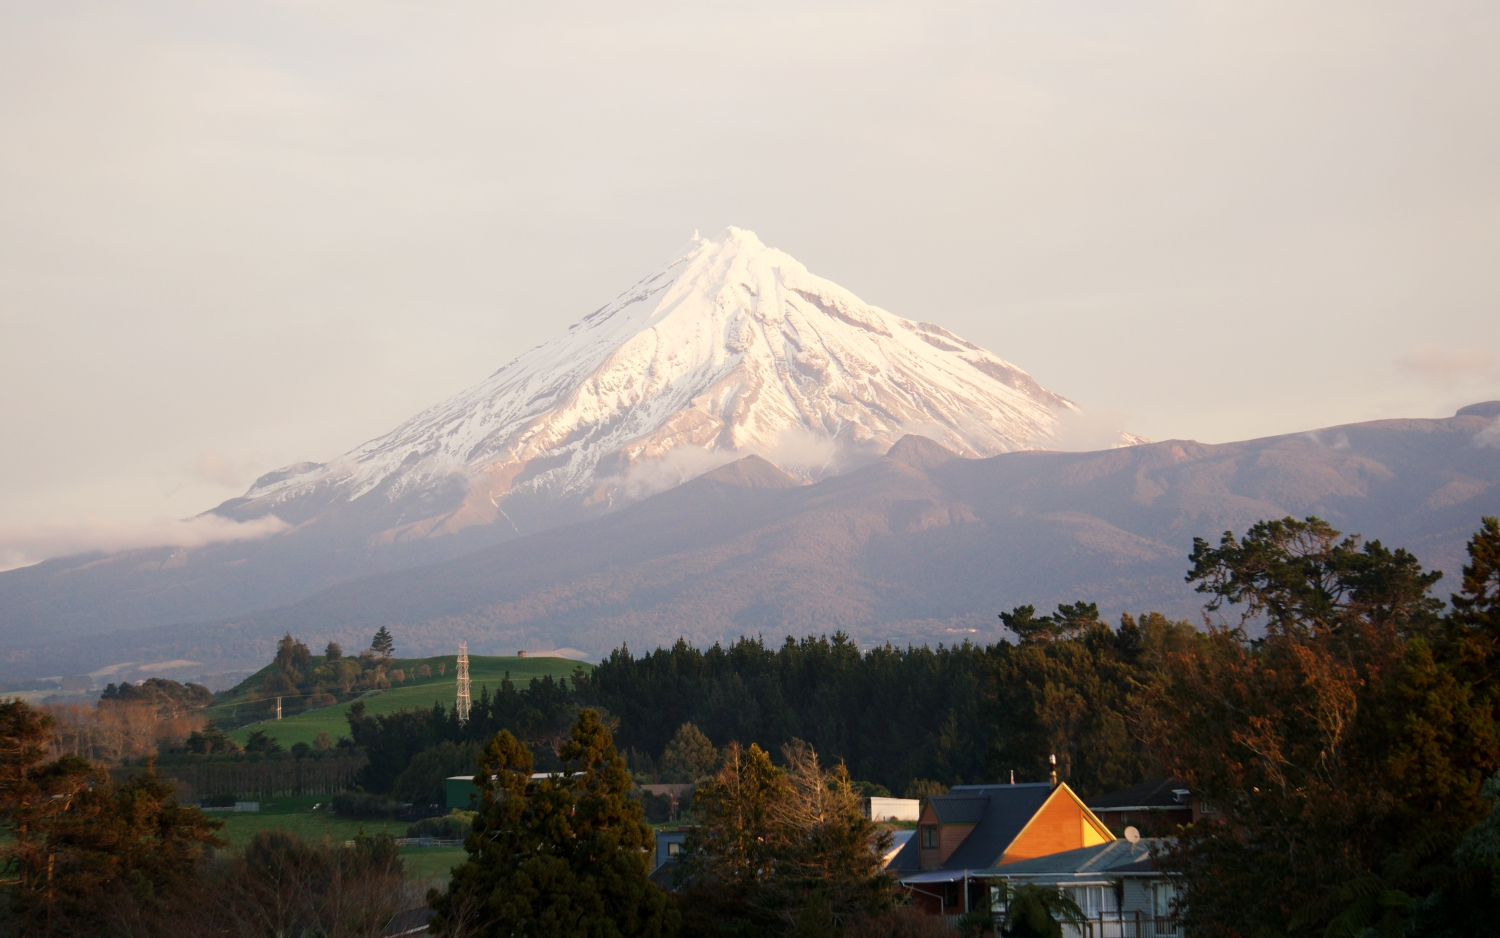 The view of Mt. Taranaki from Steve and Melayna's house in New Plymouth. I woke up to this view every morning.